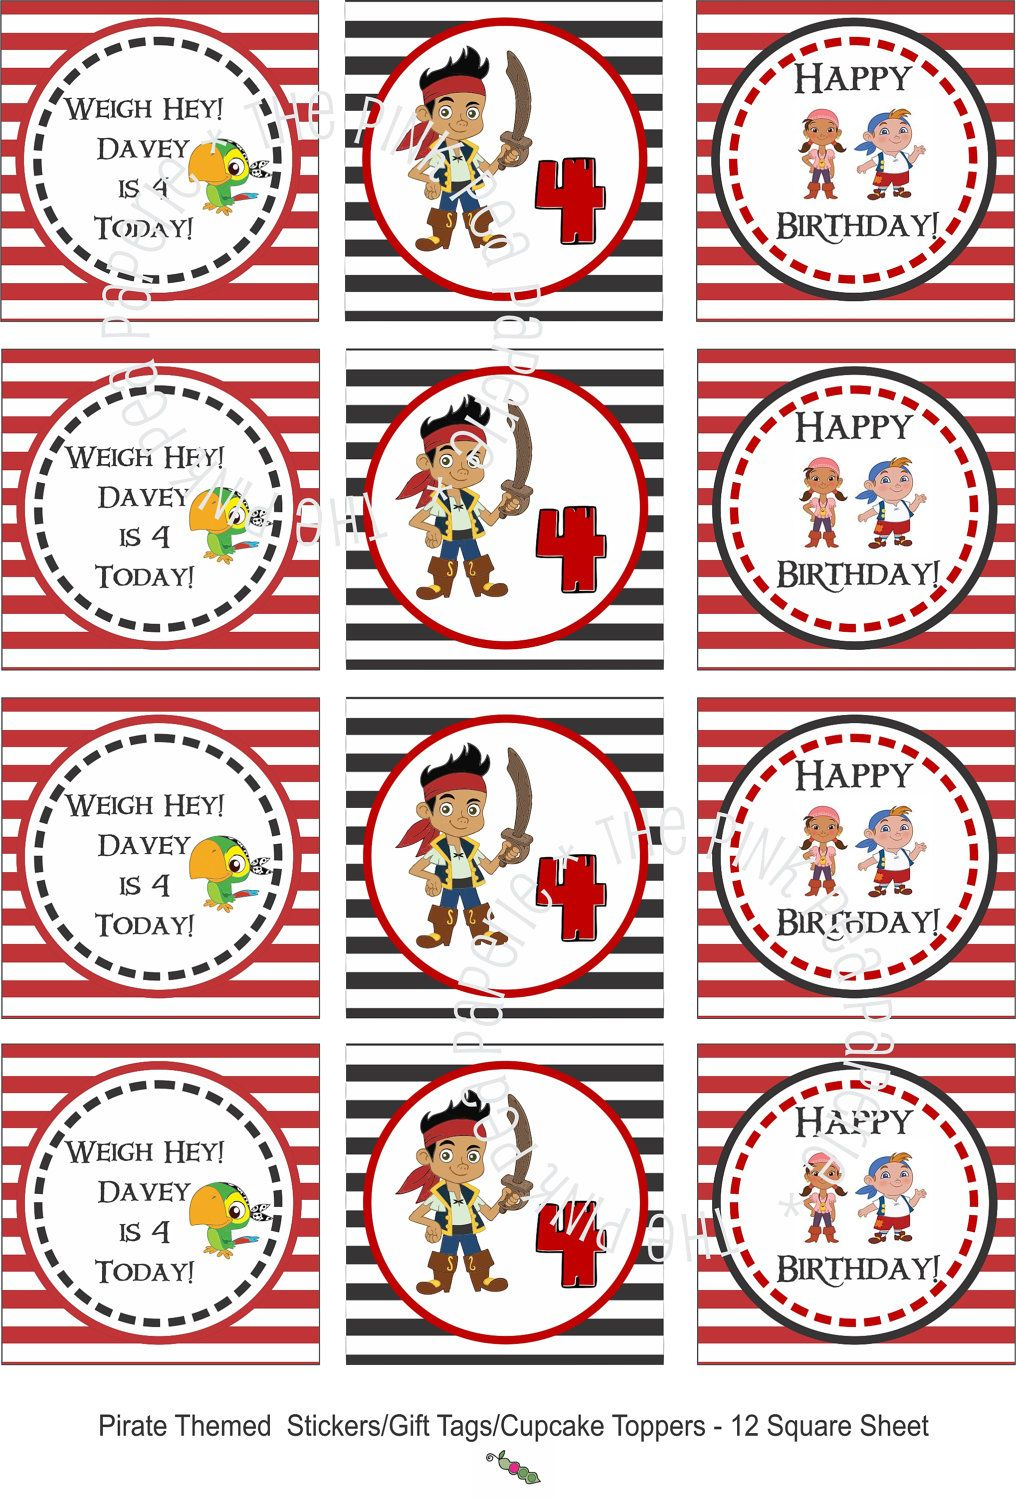 custom printable jake and the neverland pirates stickers or gift